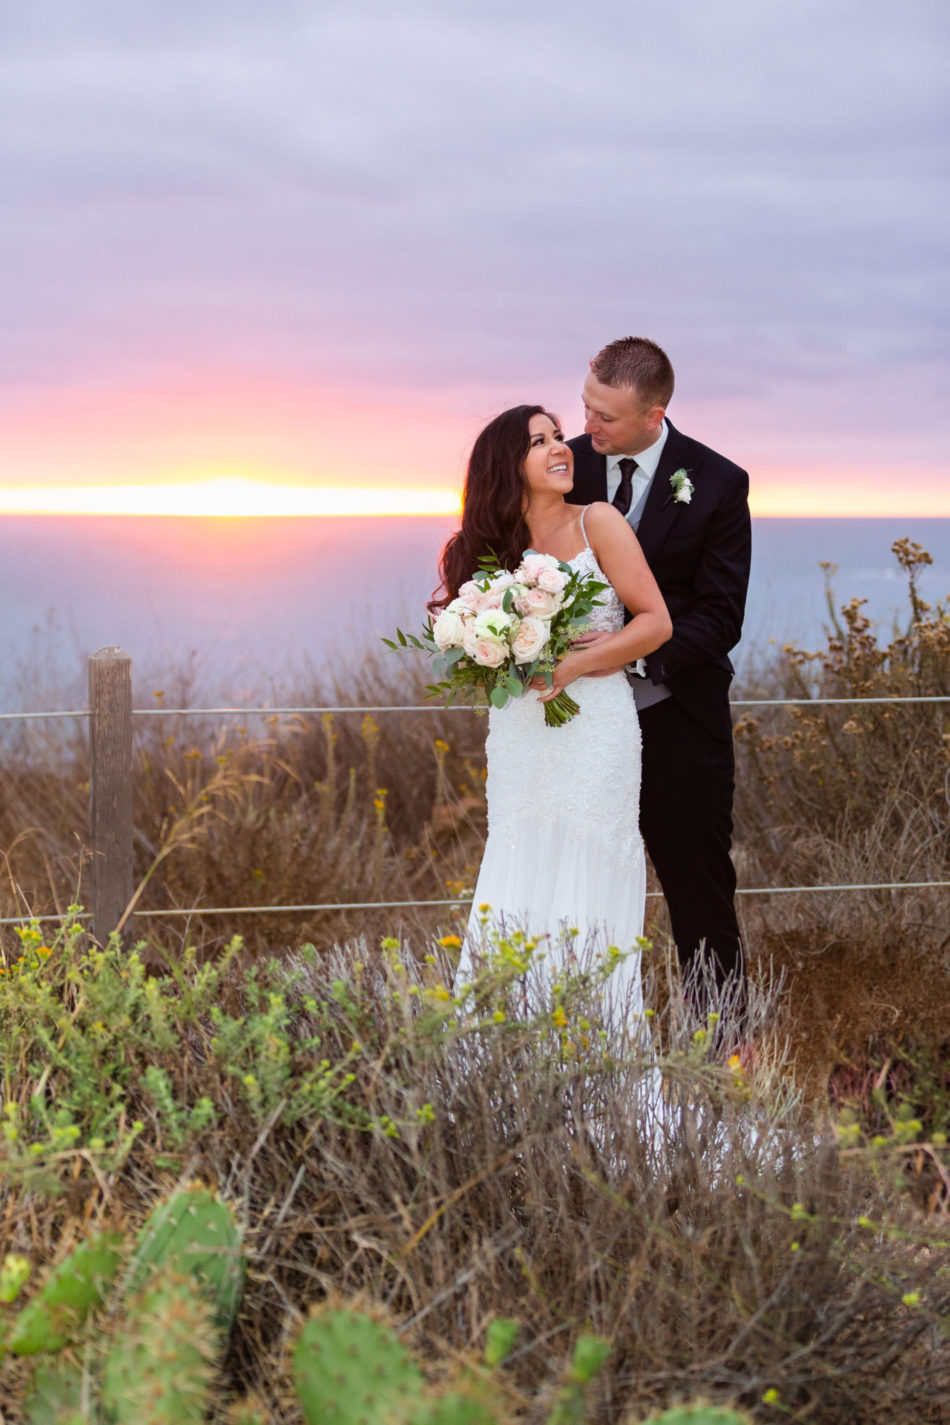 newlyweds, bride and groom, romantic pastel wedding, floral design, florist, wedding florist, wedding flowers, orange county weddings, orange county wedding florist, orange county florist, orange county floral design, flowers by cina